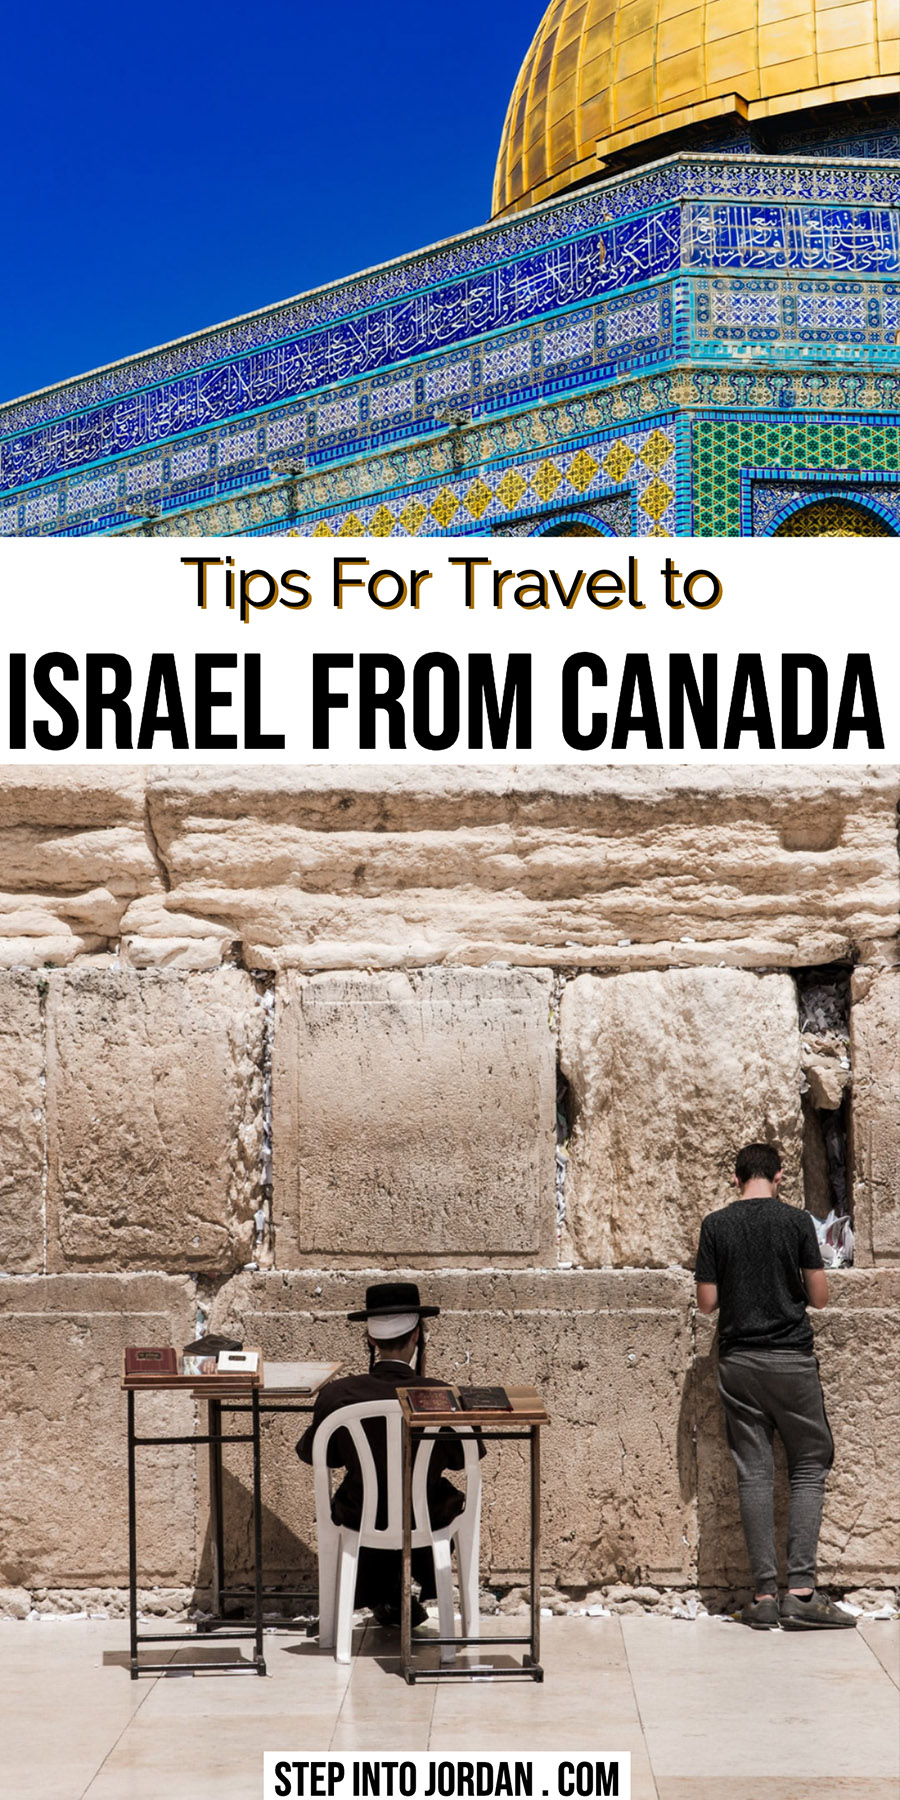 Israel Tours from Canada